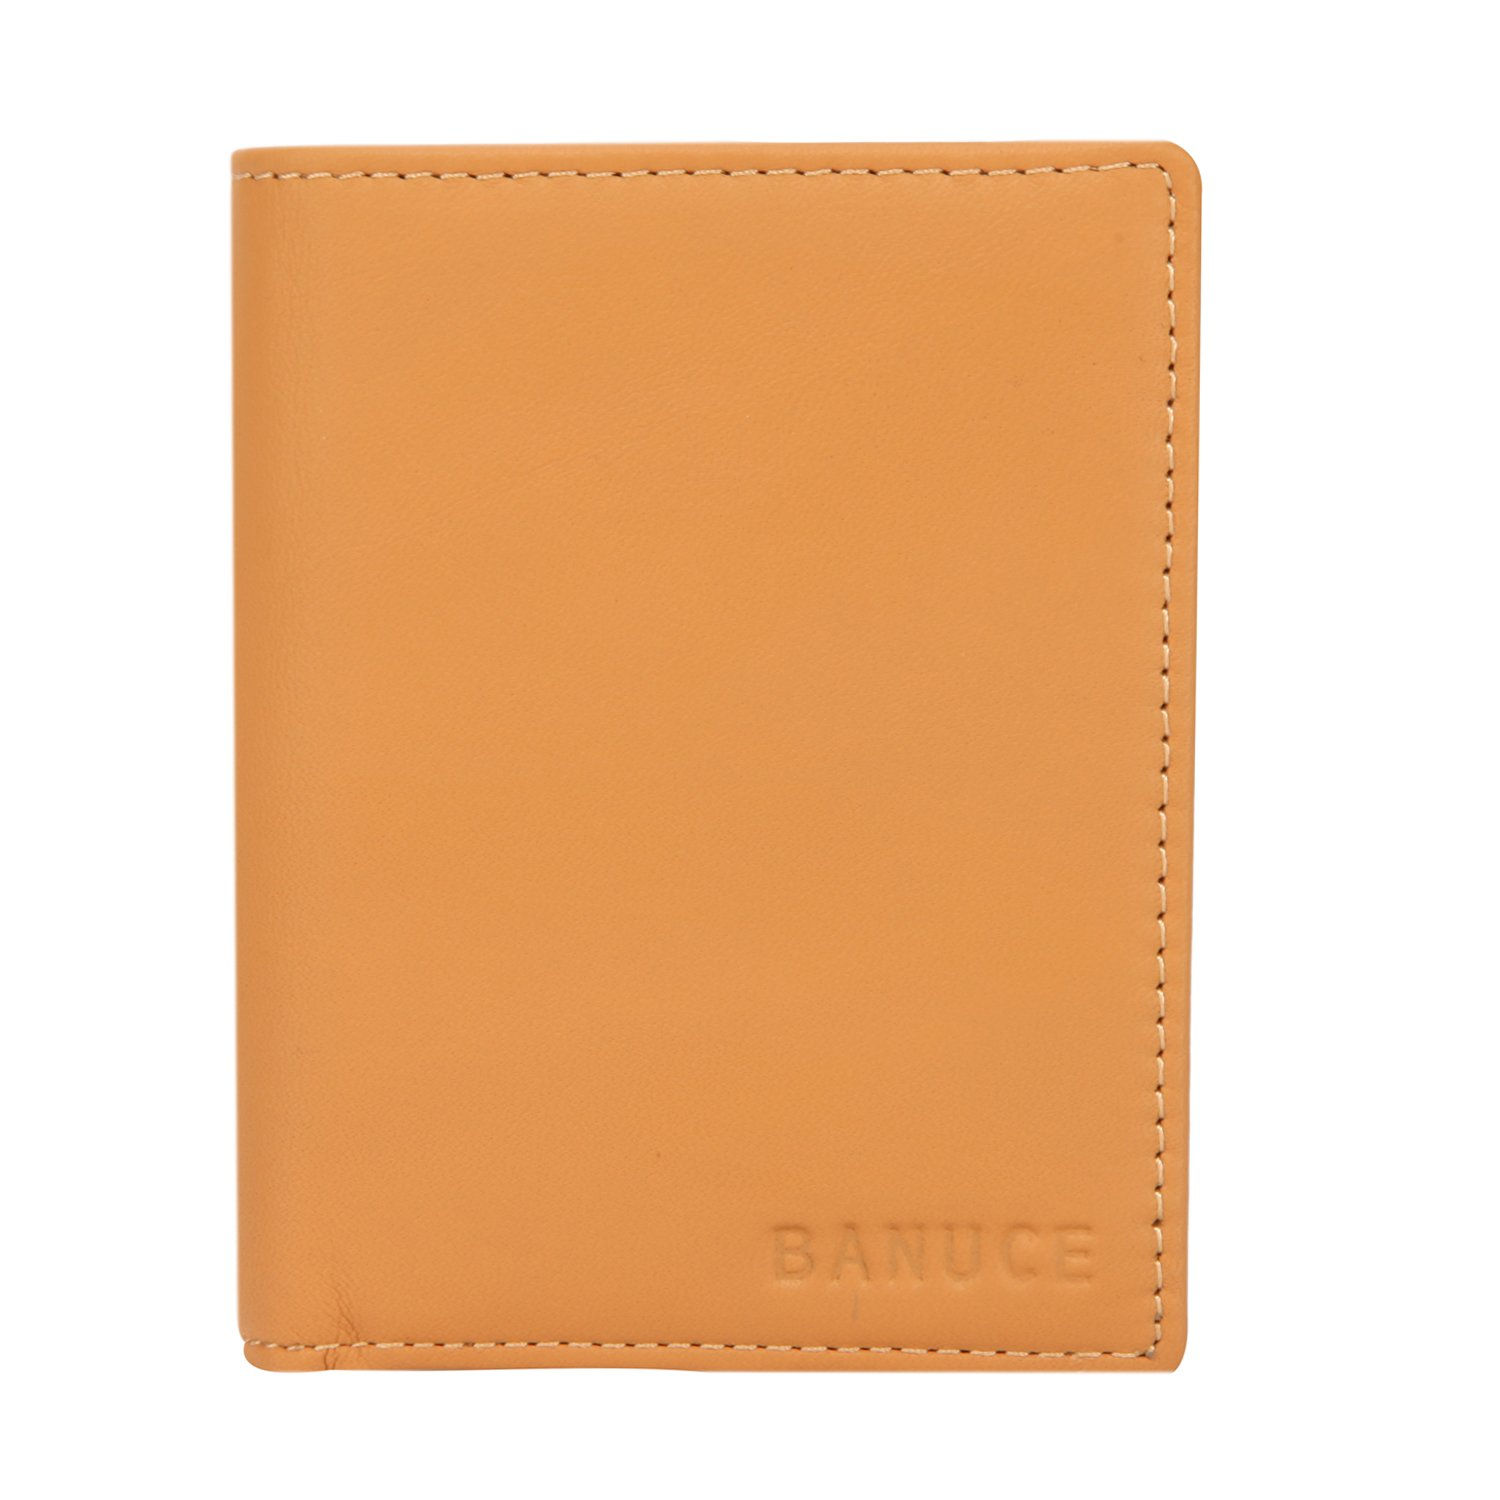 Banuce Women's Full Grains Genuine Leather Slim Small Item Trifold Wallet Color Light Brown by Banuce (Image #4)